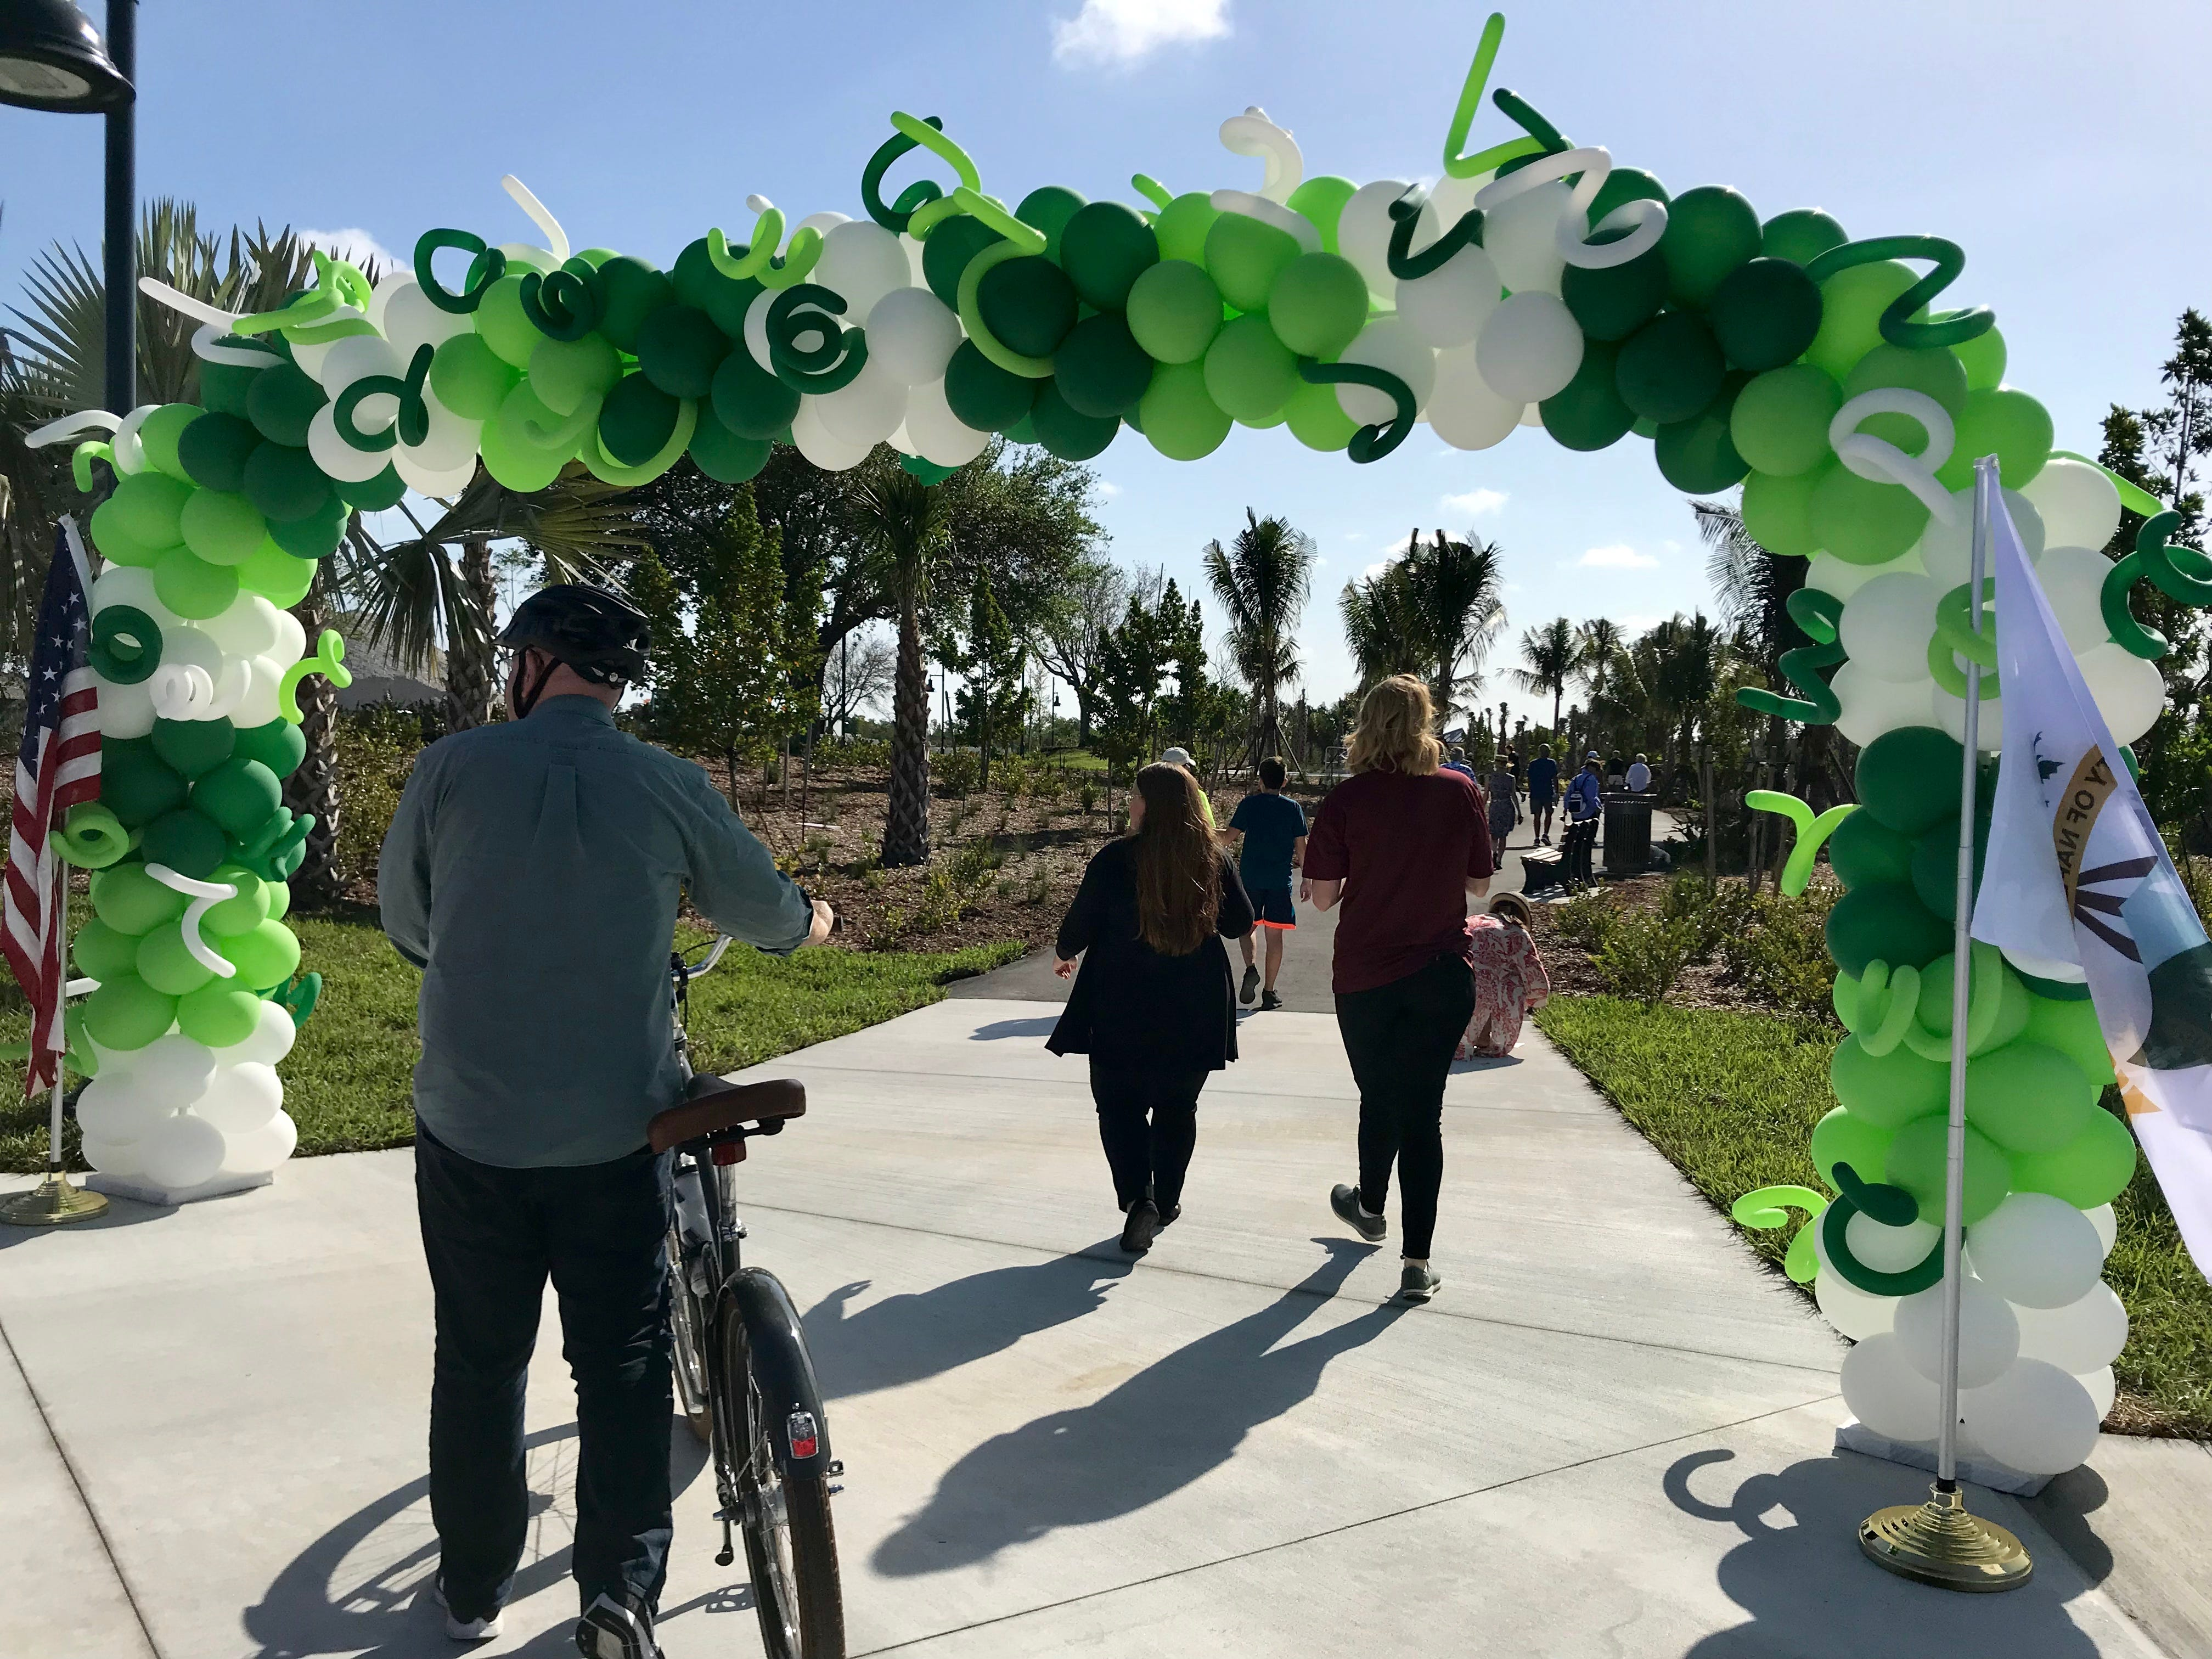 Community members explore Baker Park after the dedication ceremony on March 14, 2019. The first portion of Baker Park opened on March 14. The rest of the park is set to open in October.